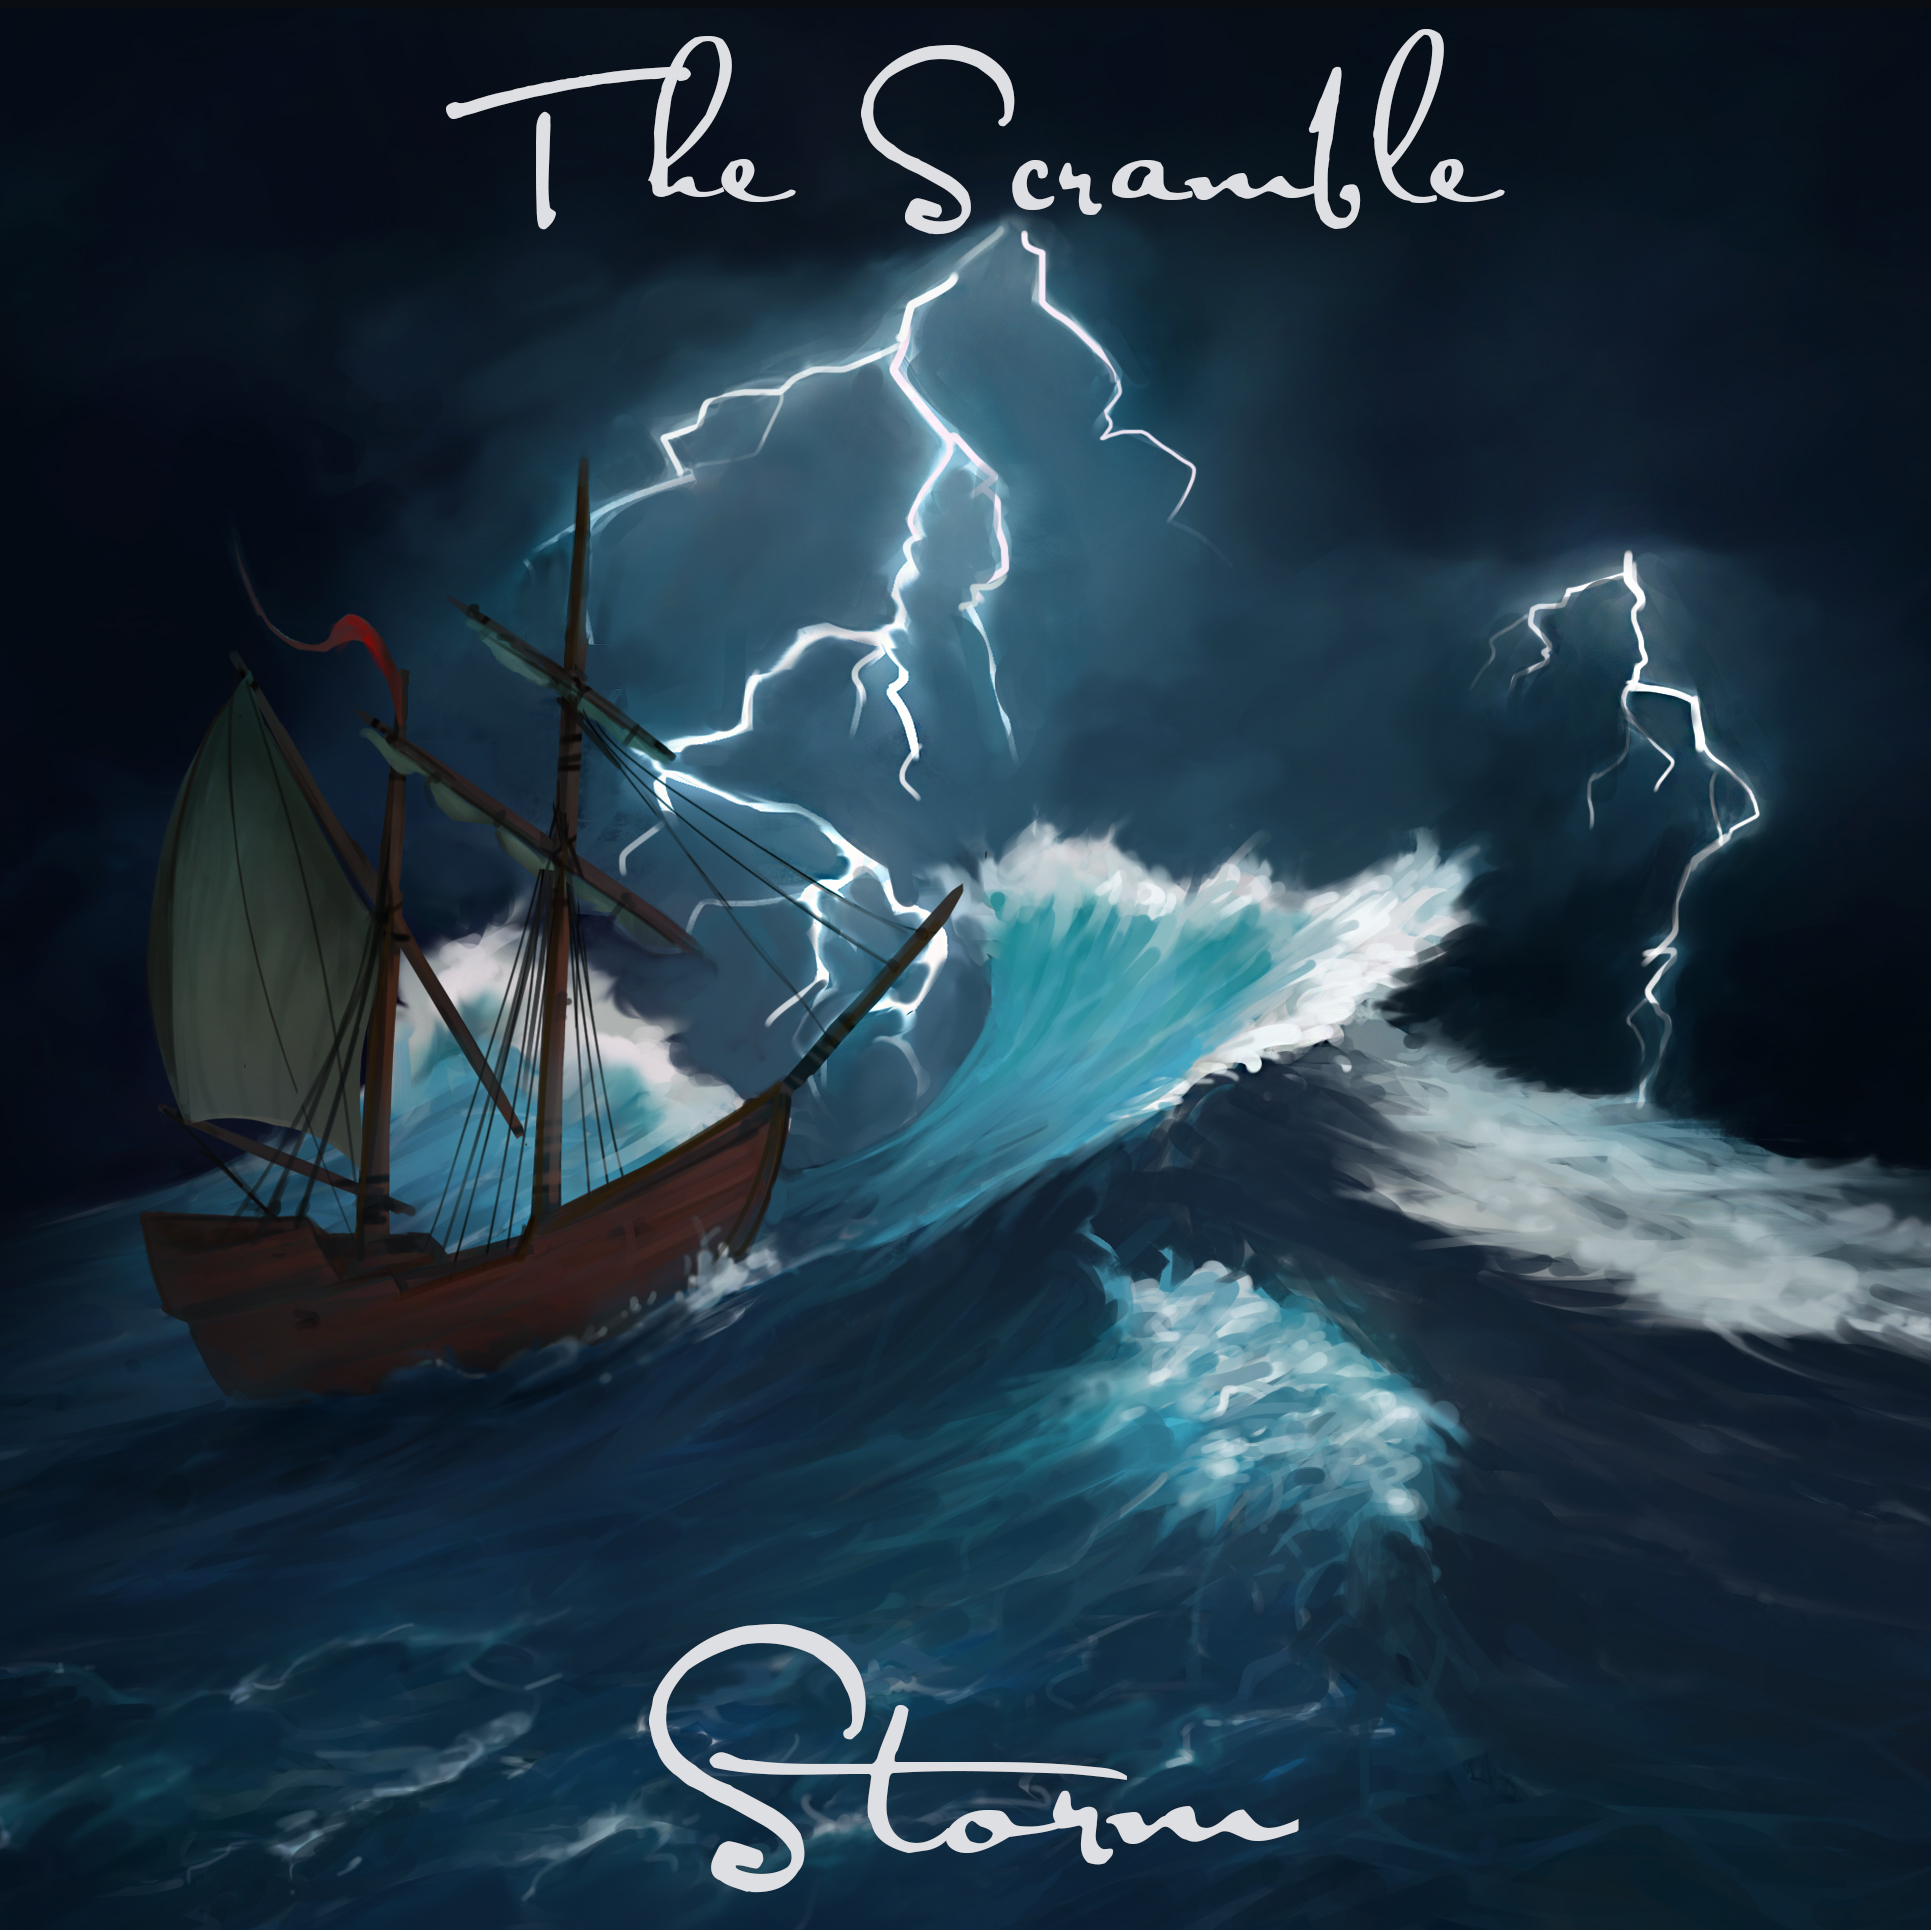 Storm by The Scramble